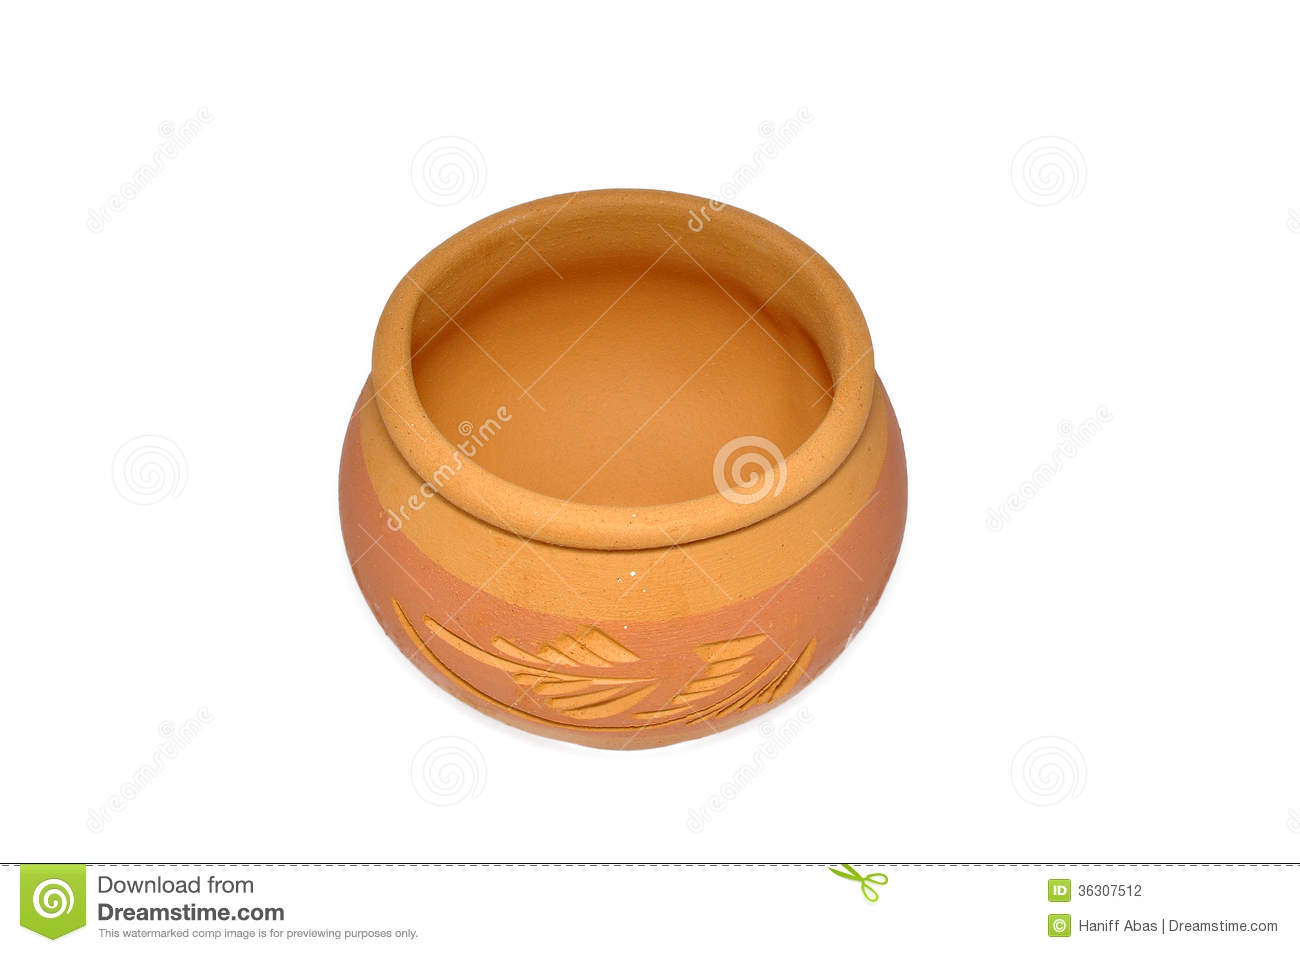 Clay water pot clipart.